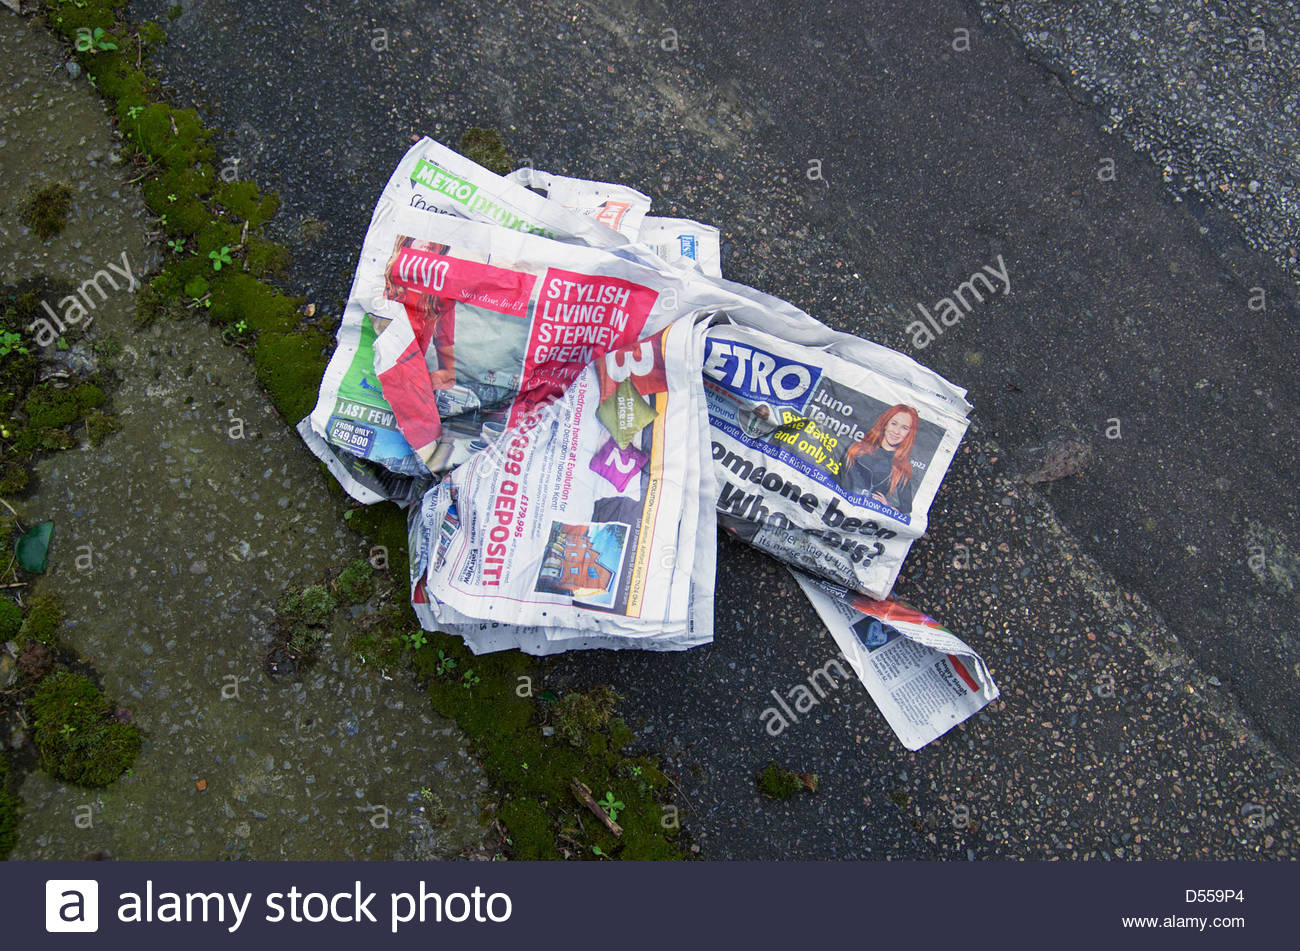 Free tabloid newspaper abandoned in street, London Stock Photo